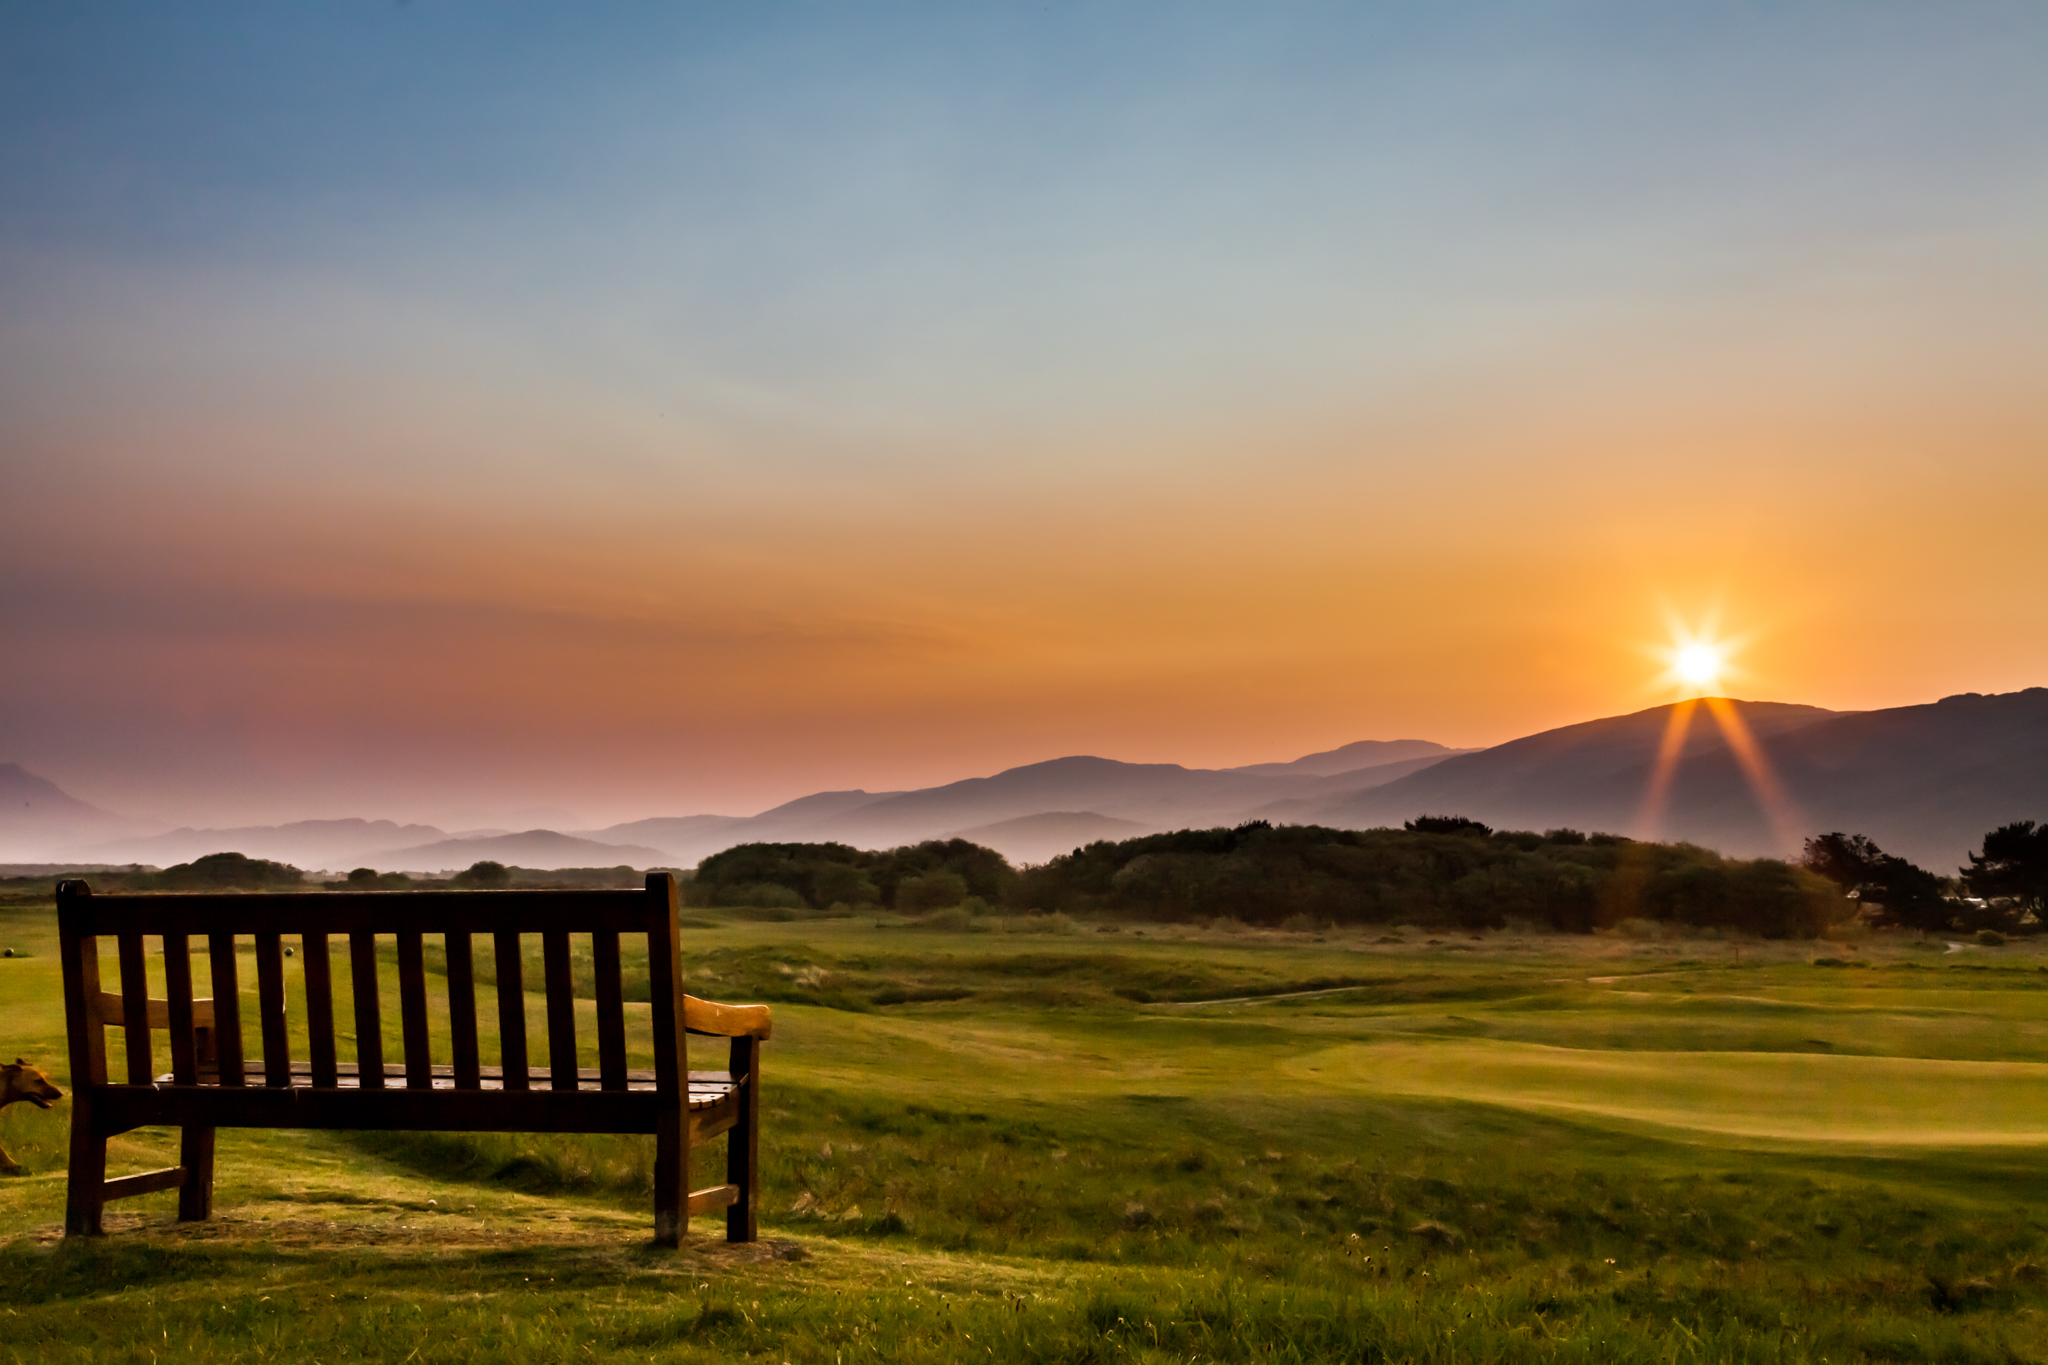 Between Harlech village and teh beach is Harlech golf club. One of their benches has this awesome view on a summers morning, as the sun rises over the Snowdonia mountains.